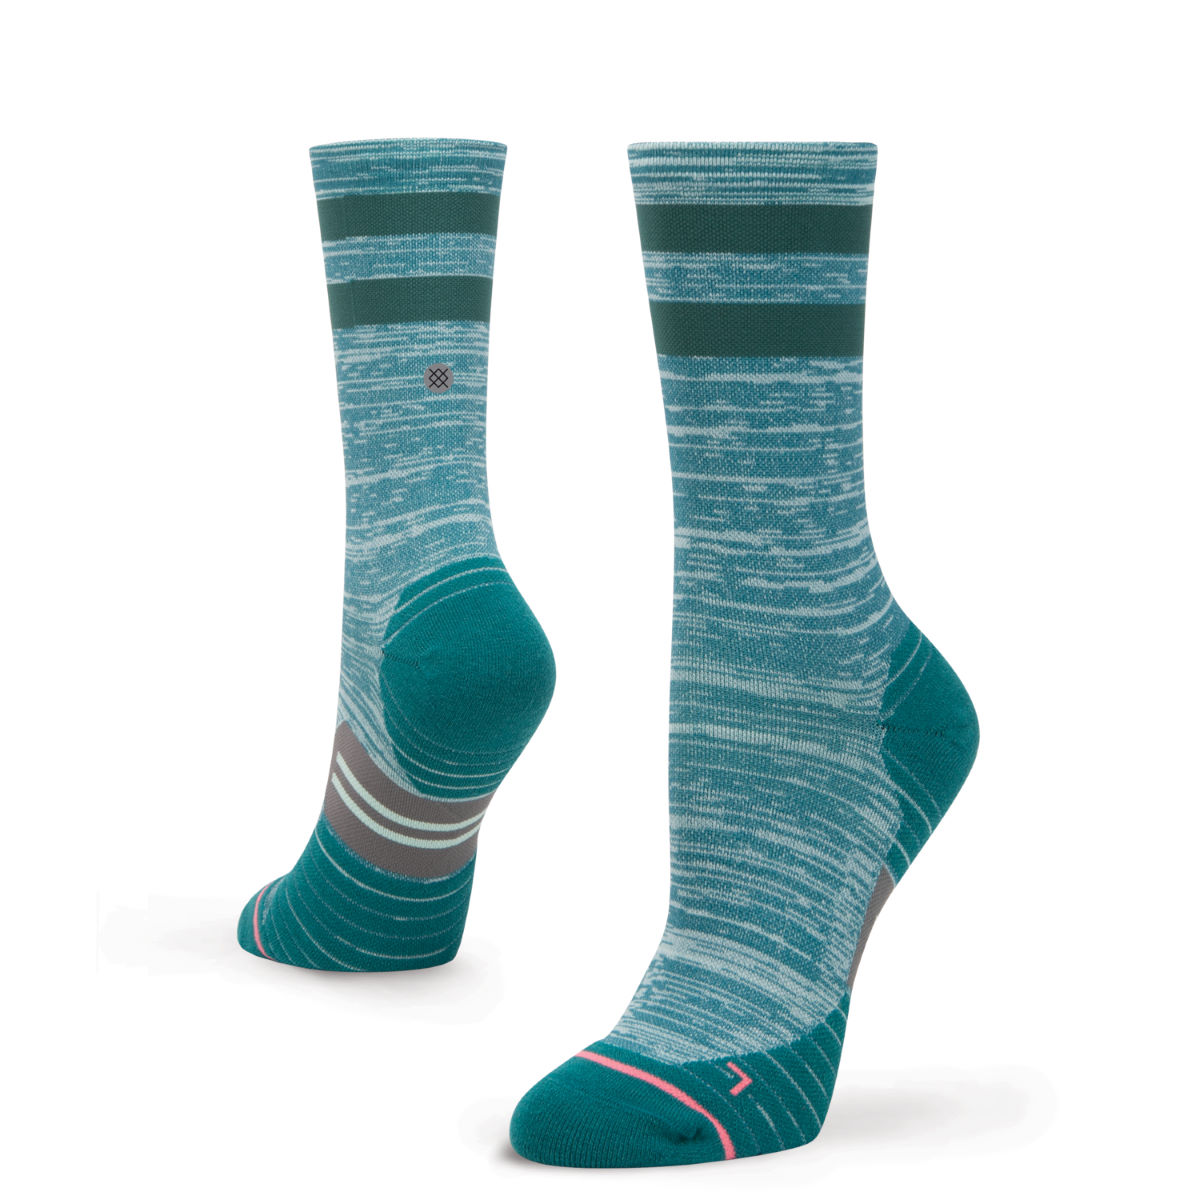 Chaussettes de running Femme Stance Uncommon Solid Crew - S Teal